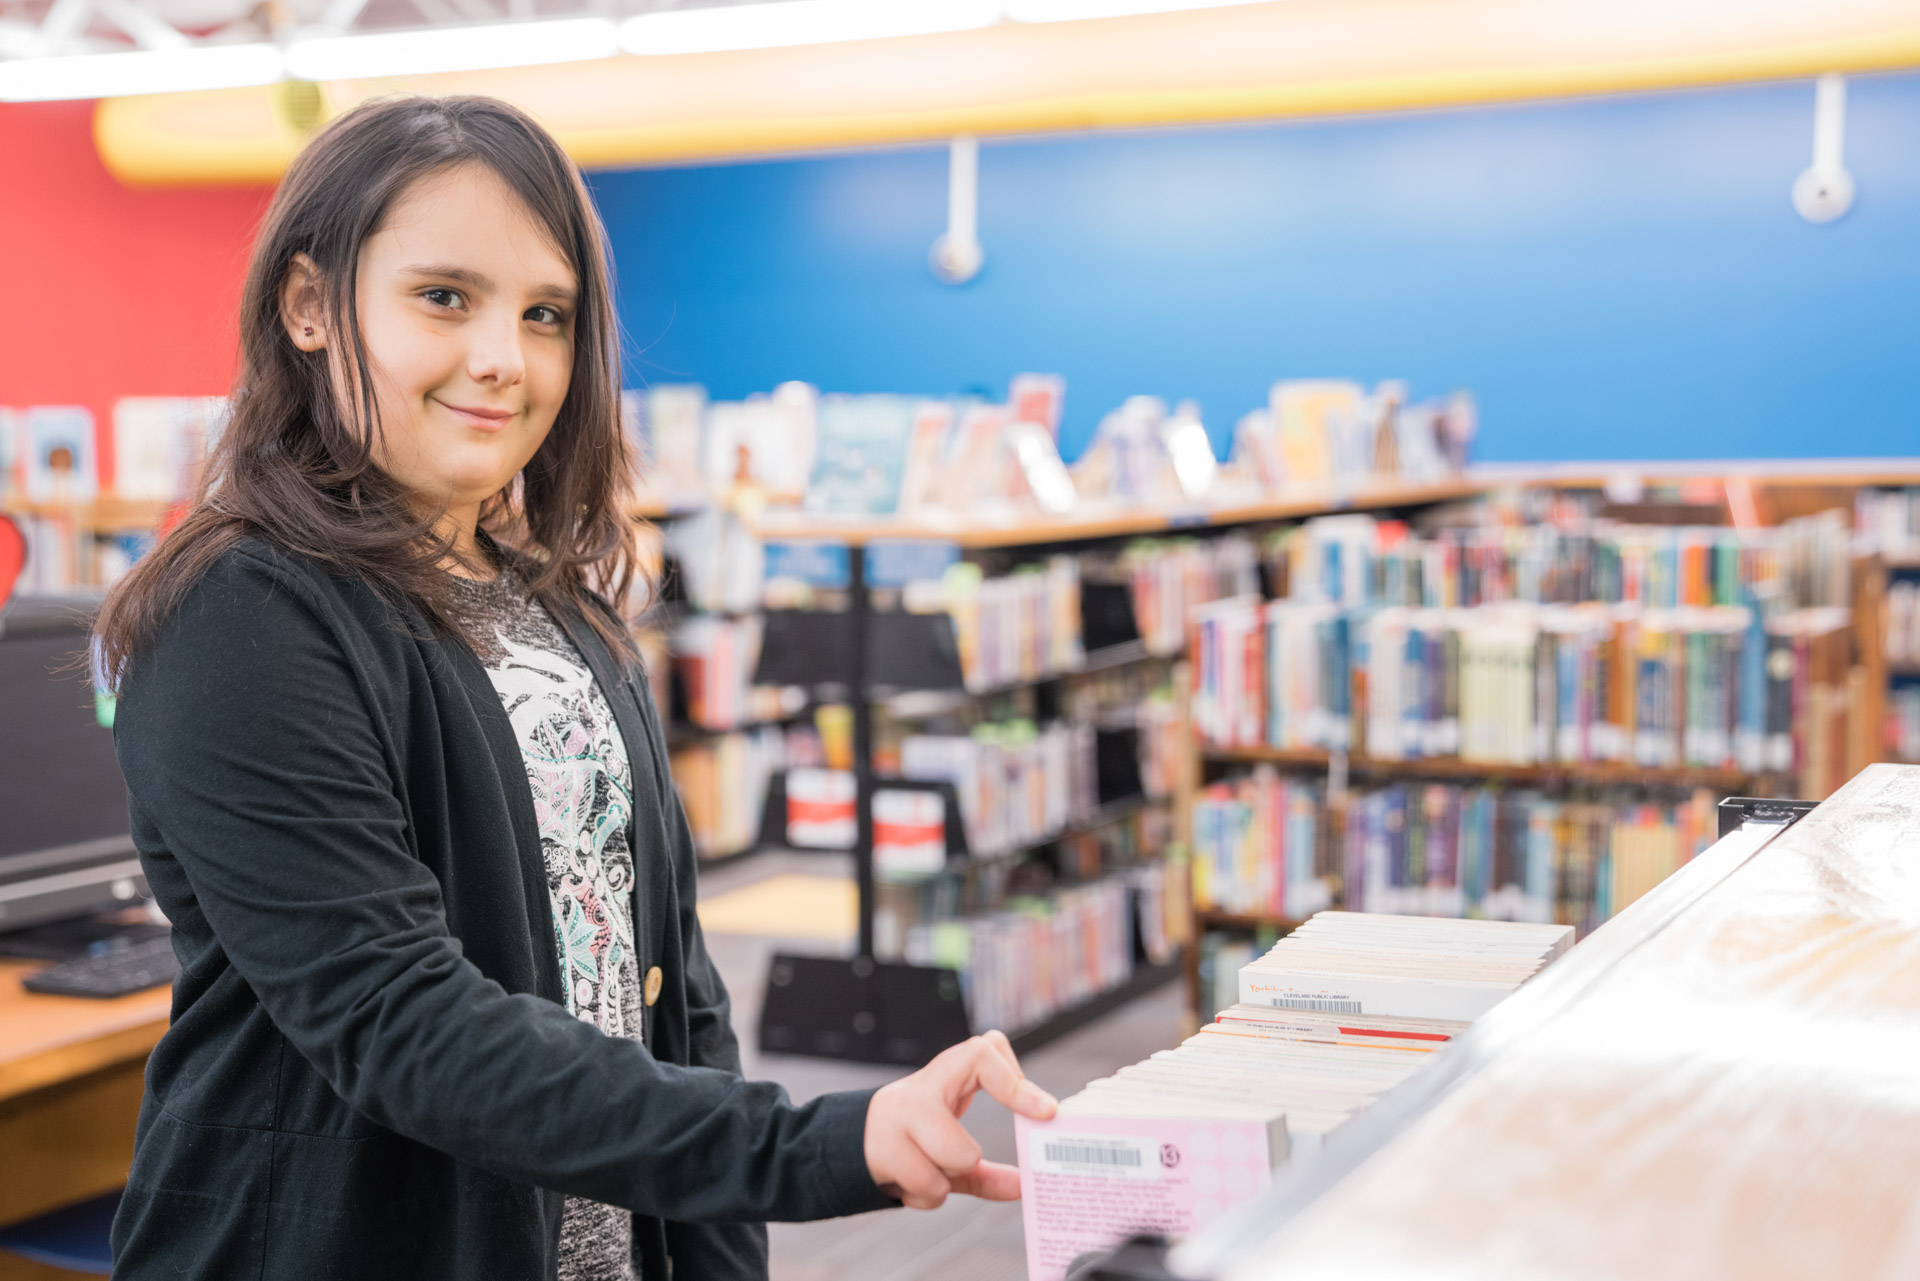 picture of young girl at a bookshelf